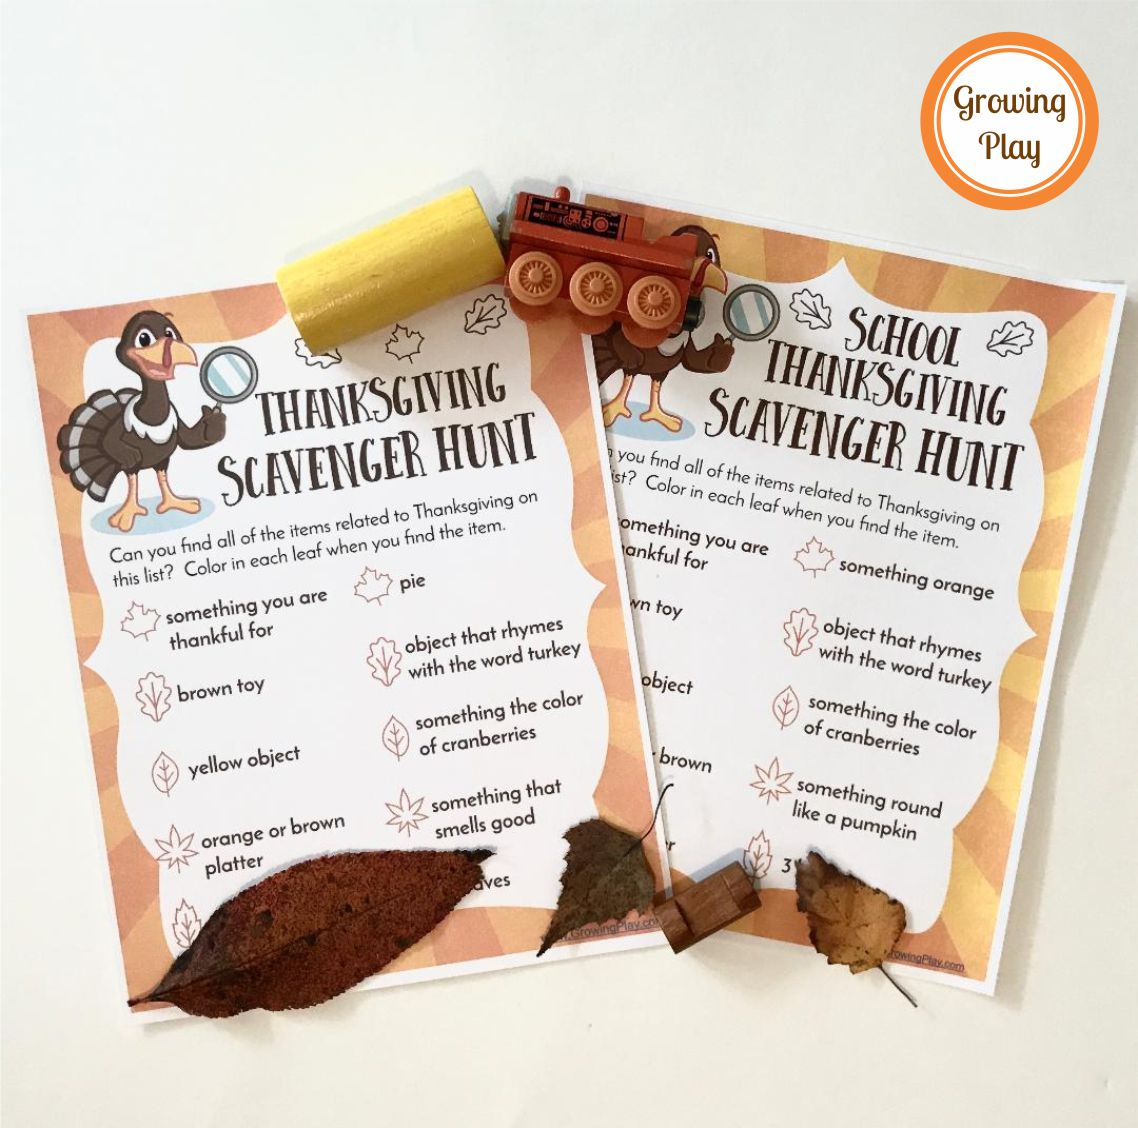 Free Thanksgiving Scavenger Hunts for Home or School